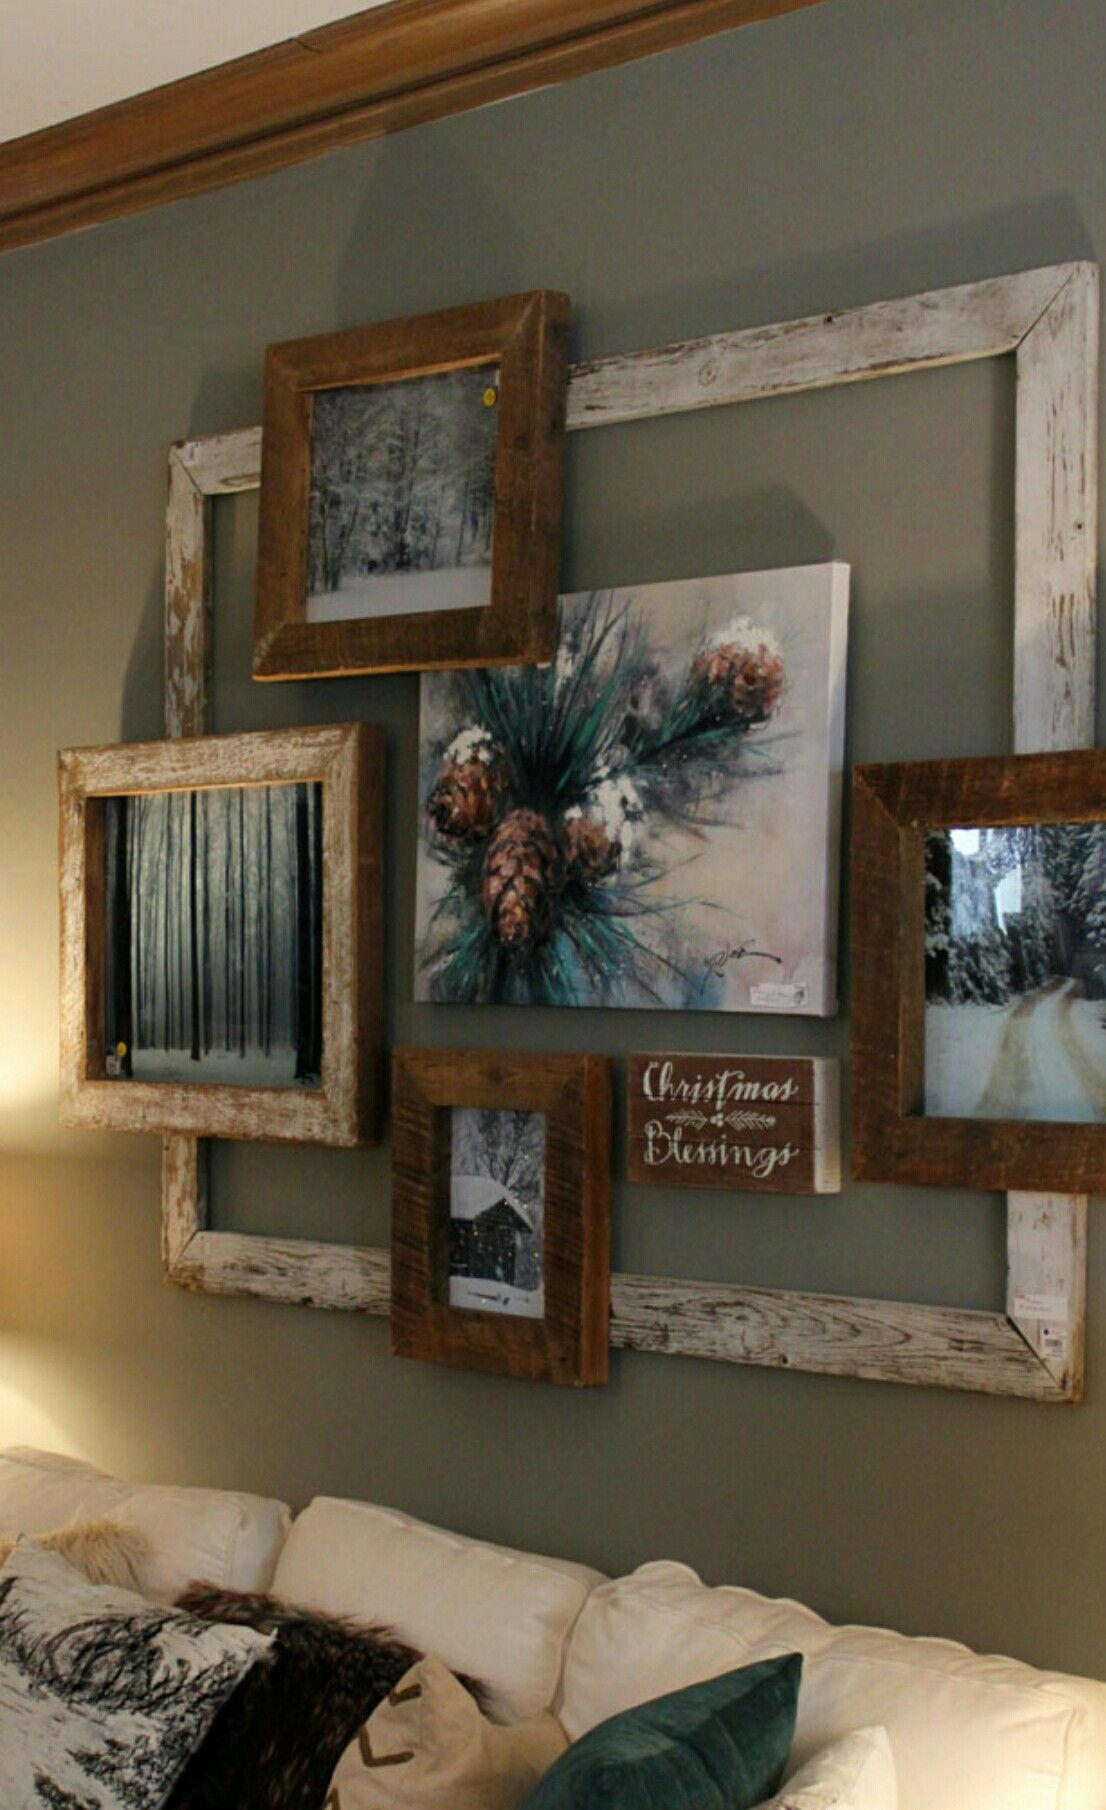 Collage of old frames makes  rustic  eye catching focal point in your room living wall decor ideas above couchabove door also rh pinterest